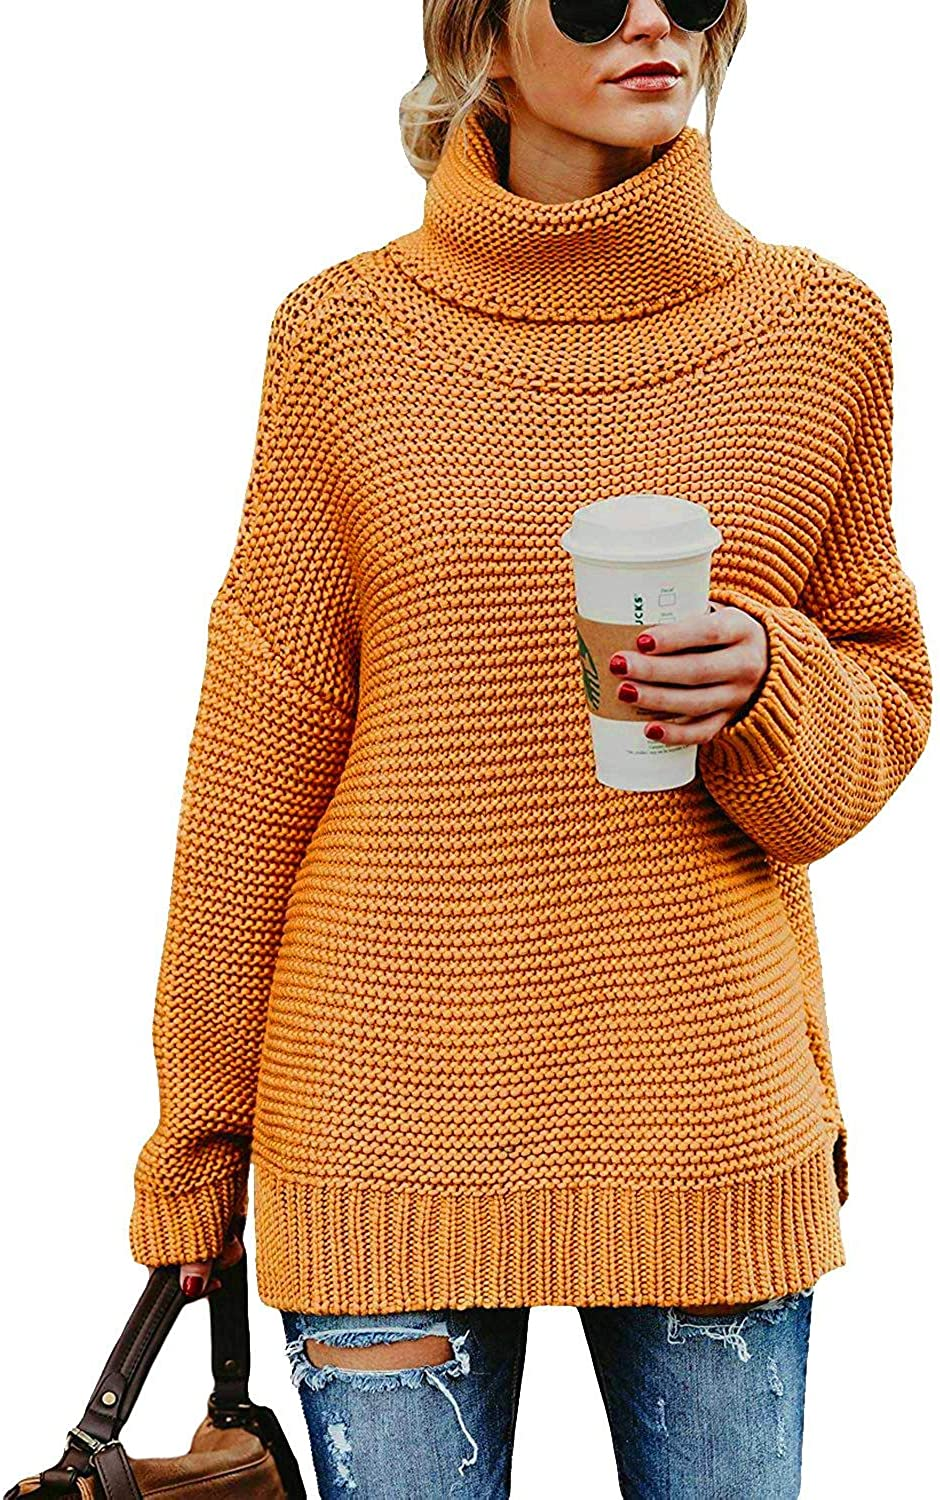 OHDREAM Womens Pullover Sweaters Plus Size Turtleneck Cowl Neck Chunky Cable Knit Long Sleeve Fall Sweater